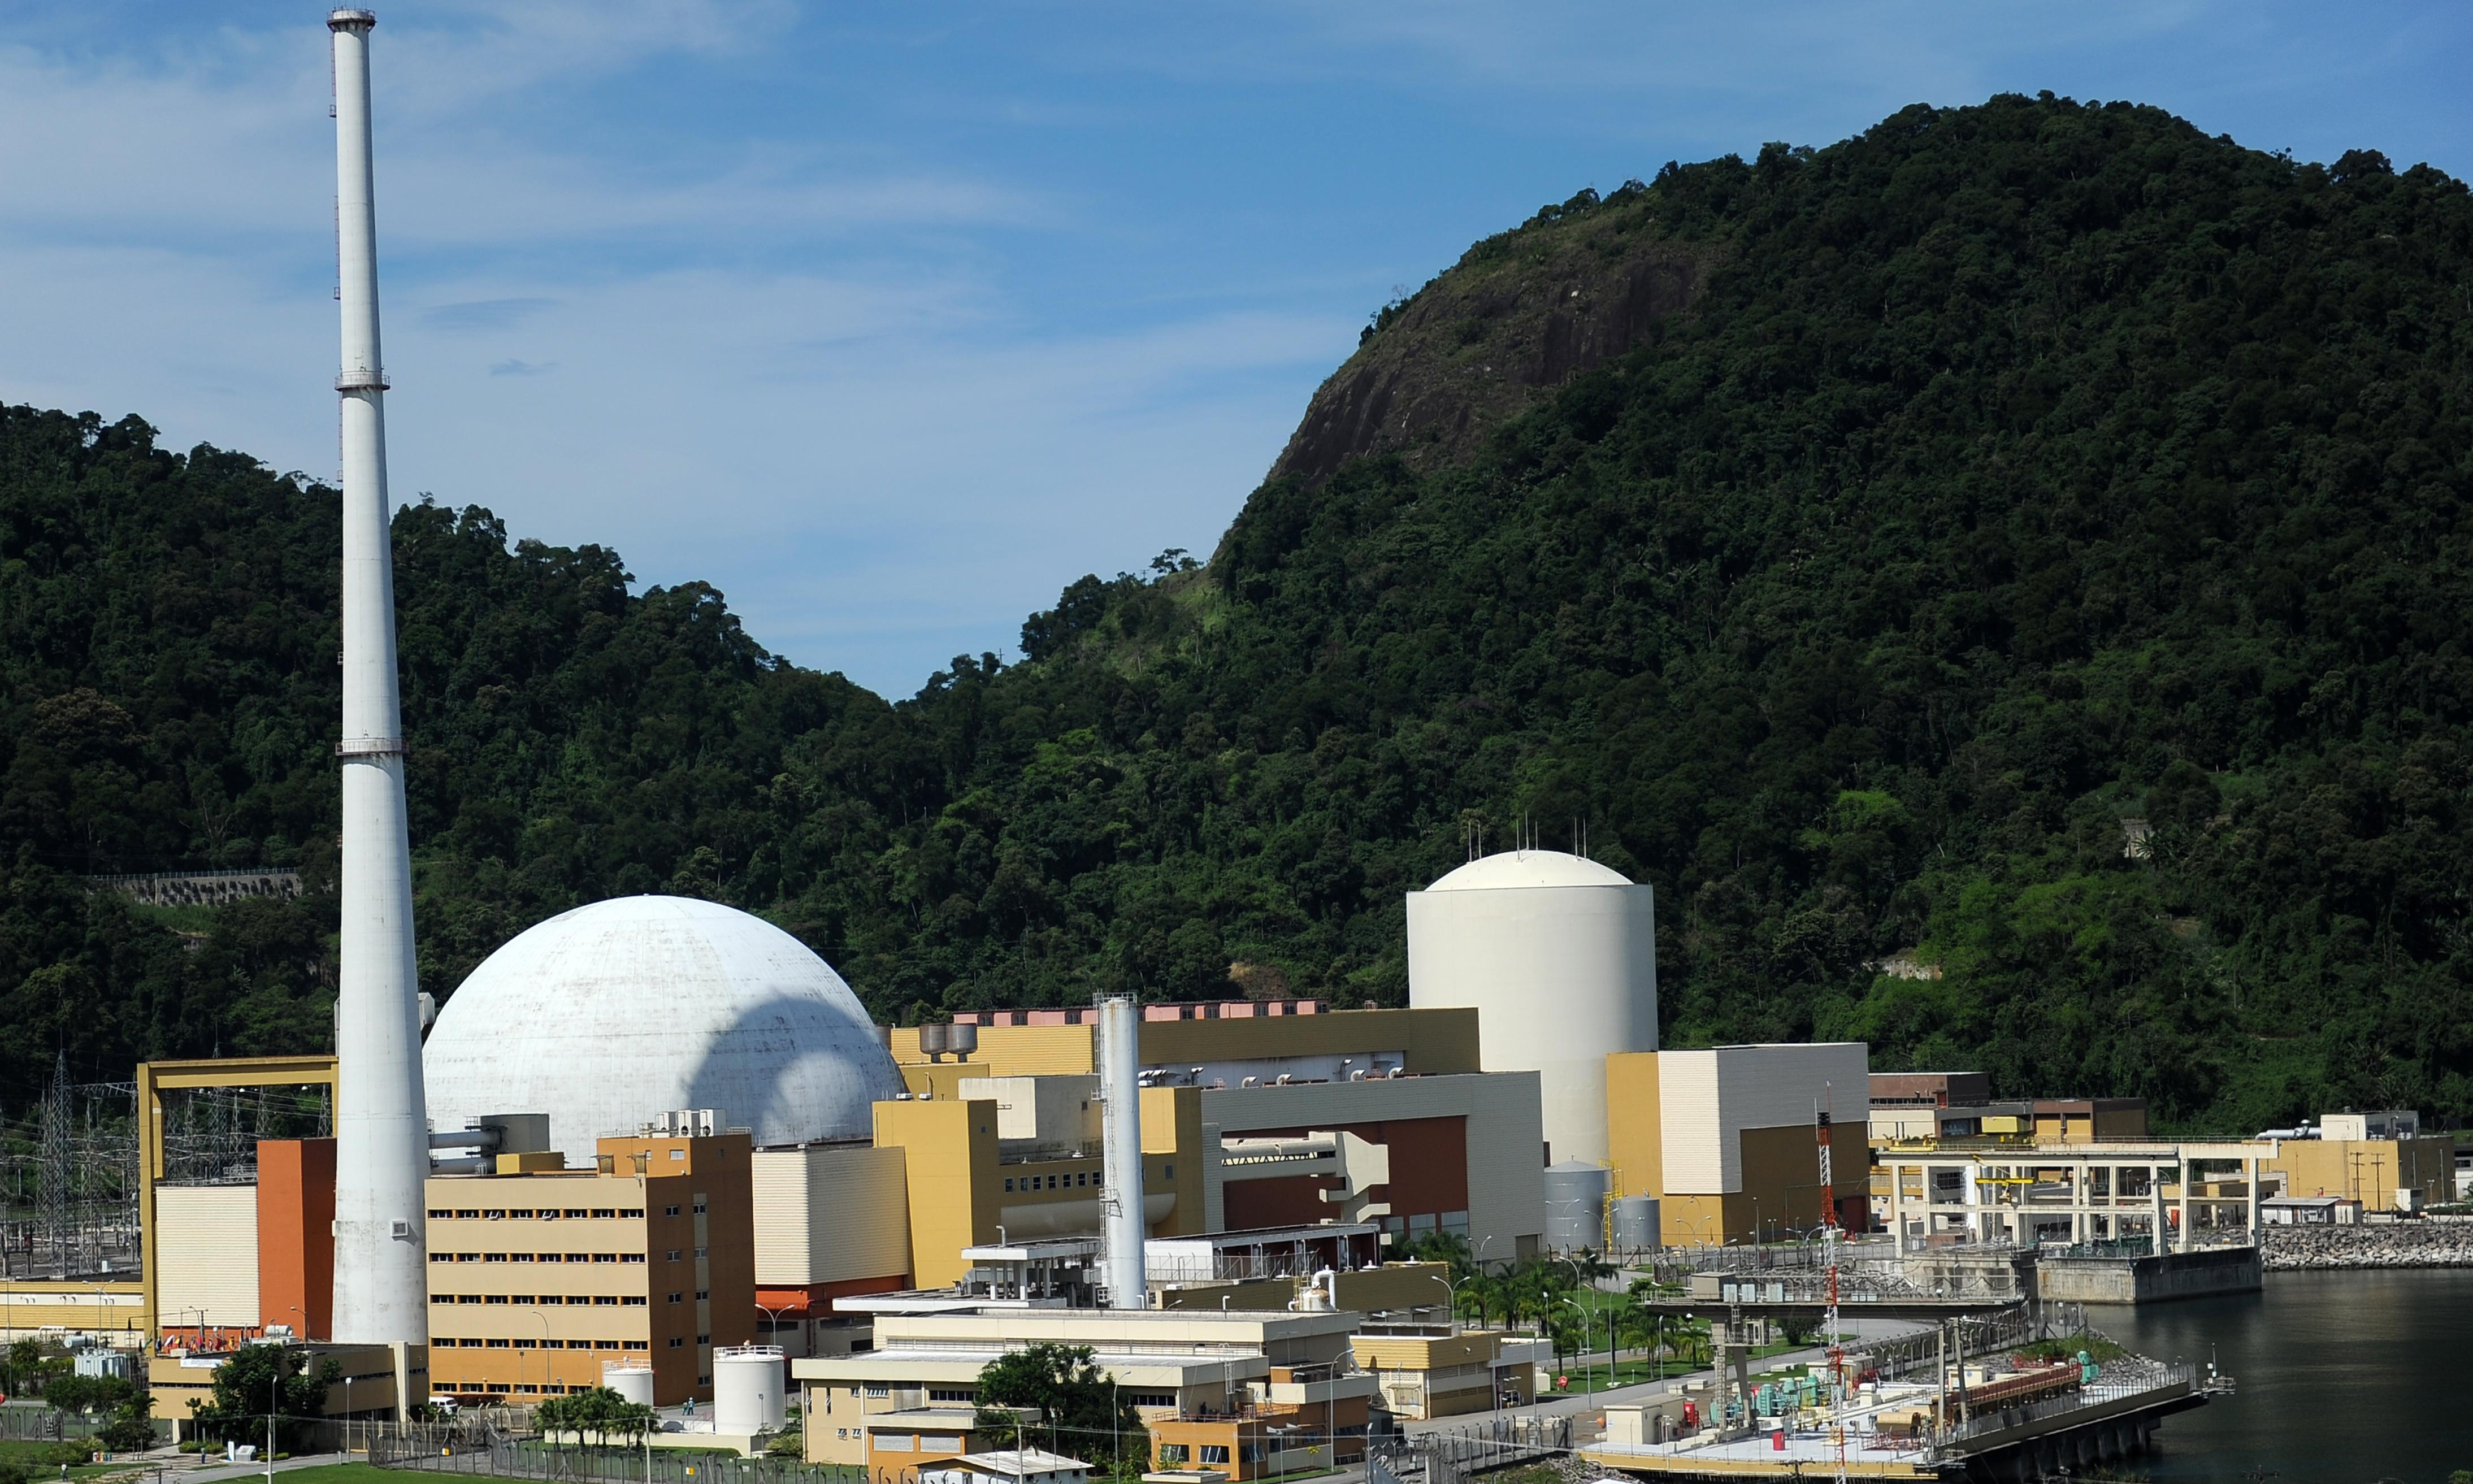 Brazilian drug gang opens fire on convoy of trucks carrying nuclear fuel